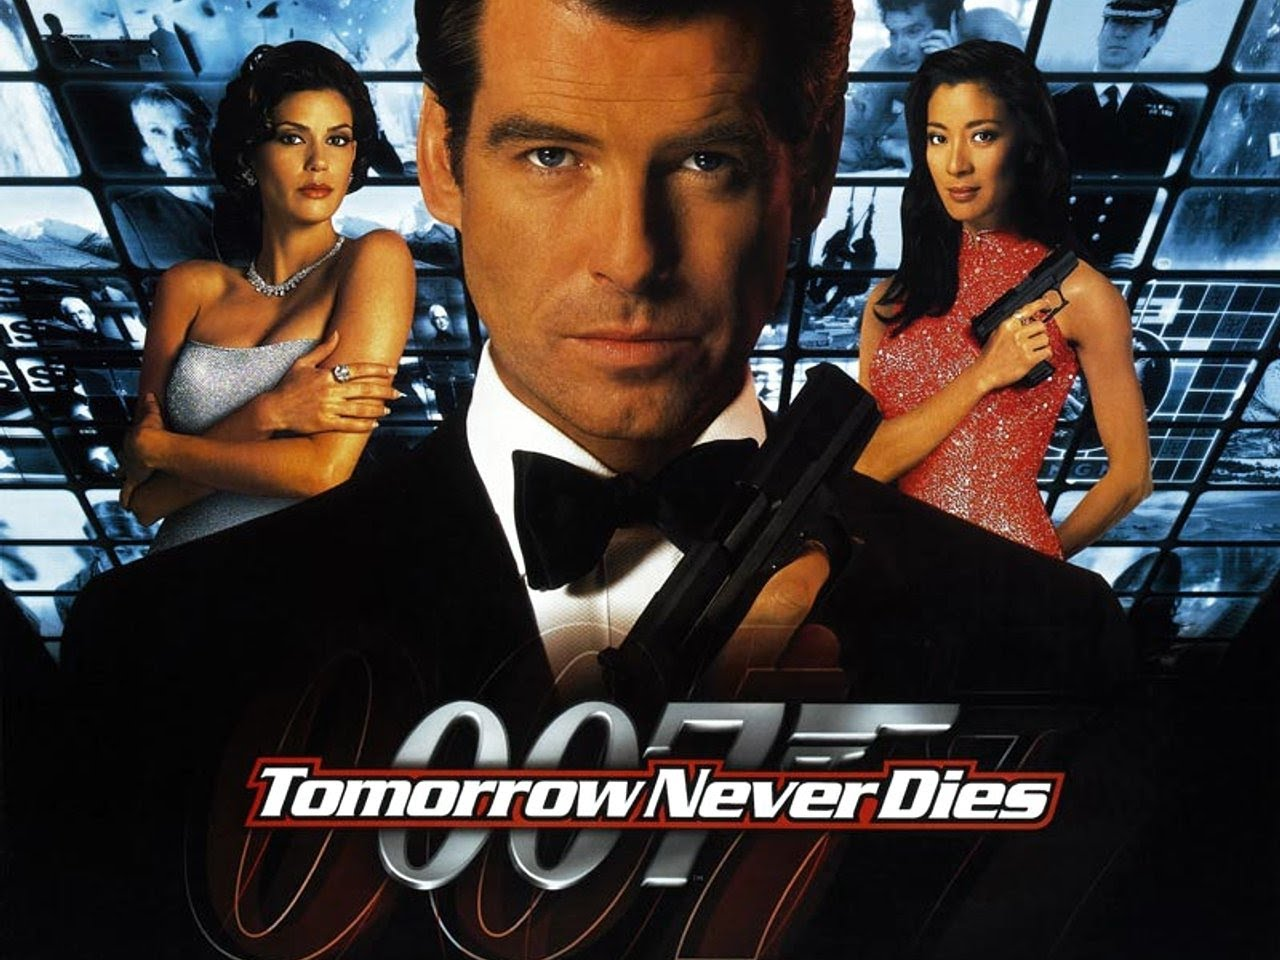 die another day full movie in hindi download